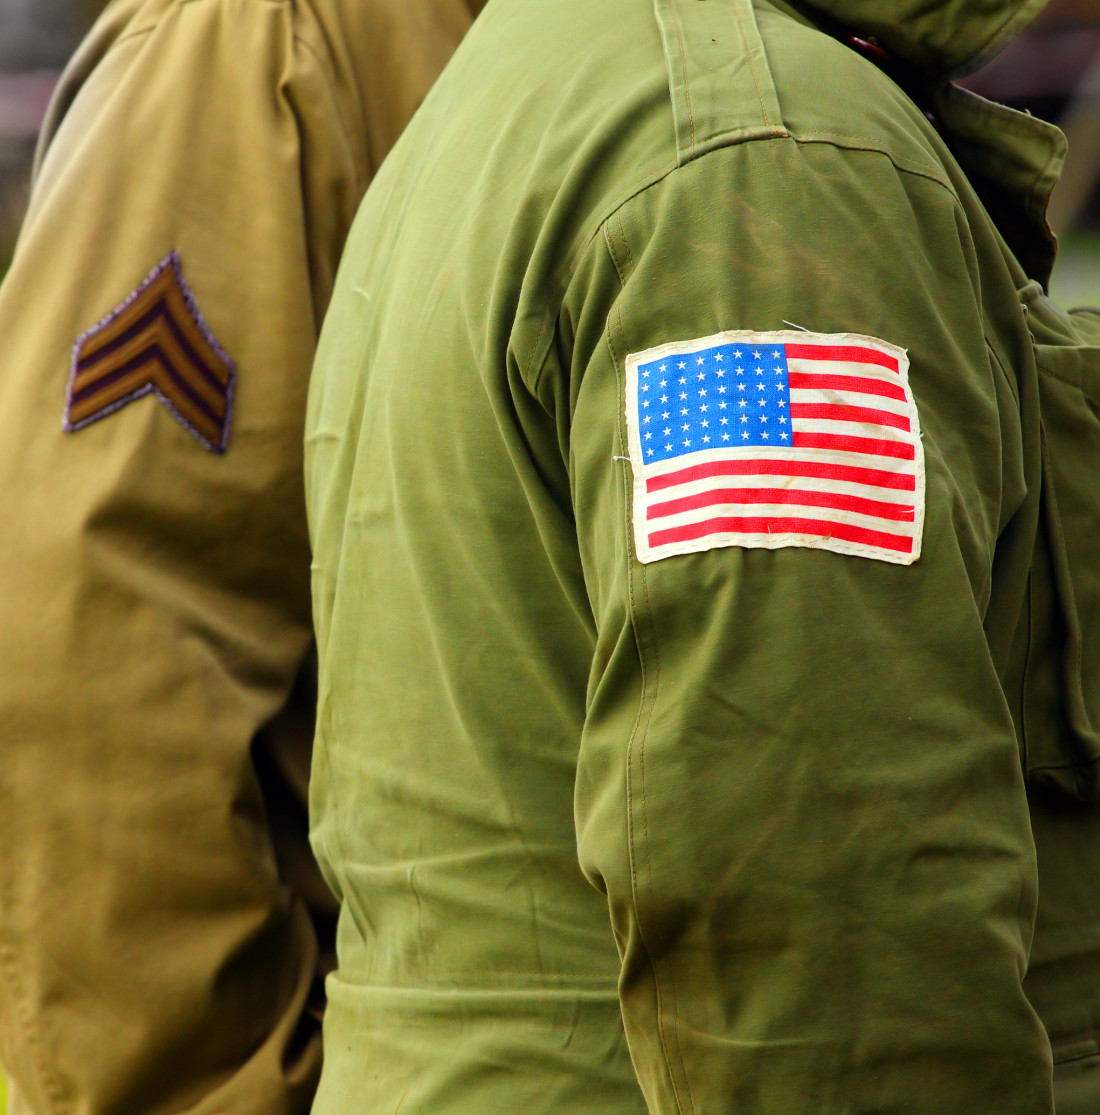 Image of two figures in US Army Jackets, one which has an American Flag patch sewn to the arm